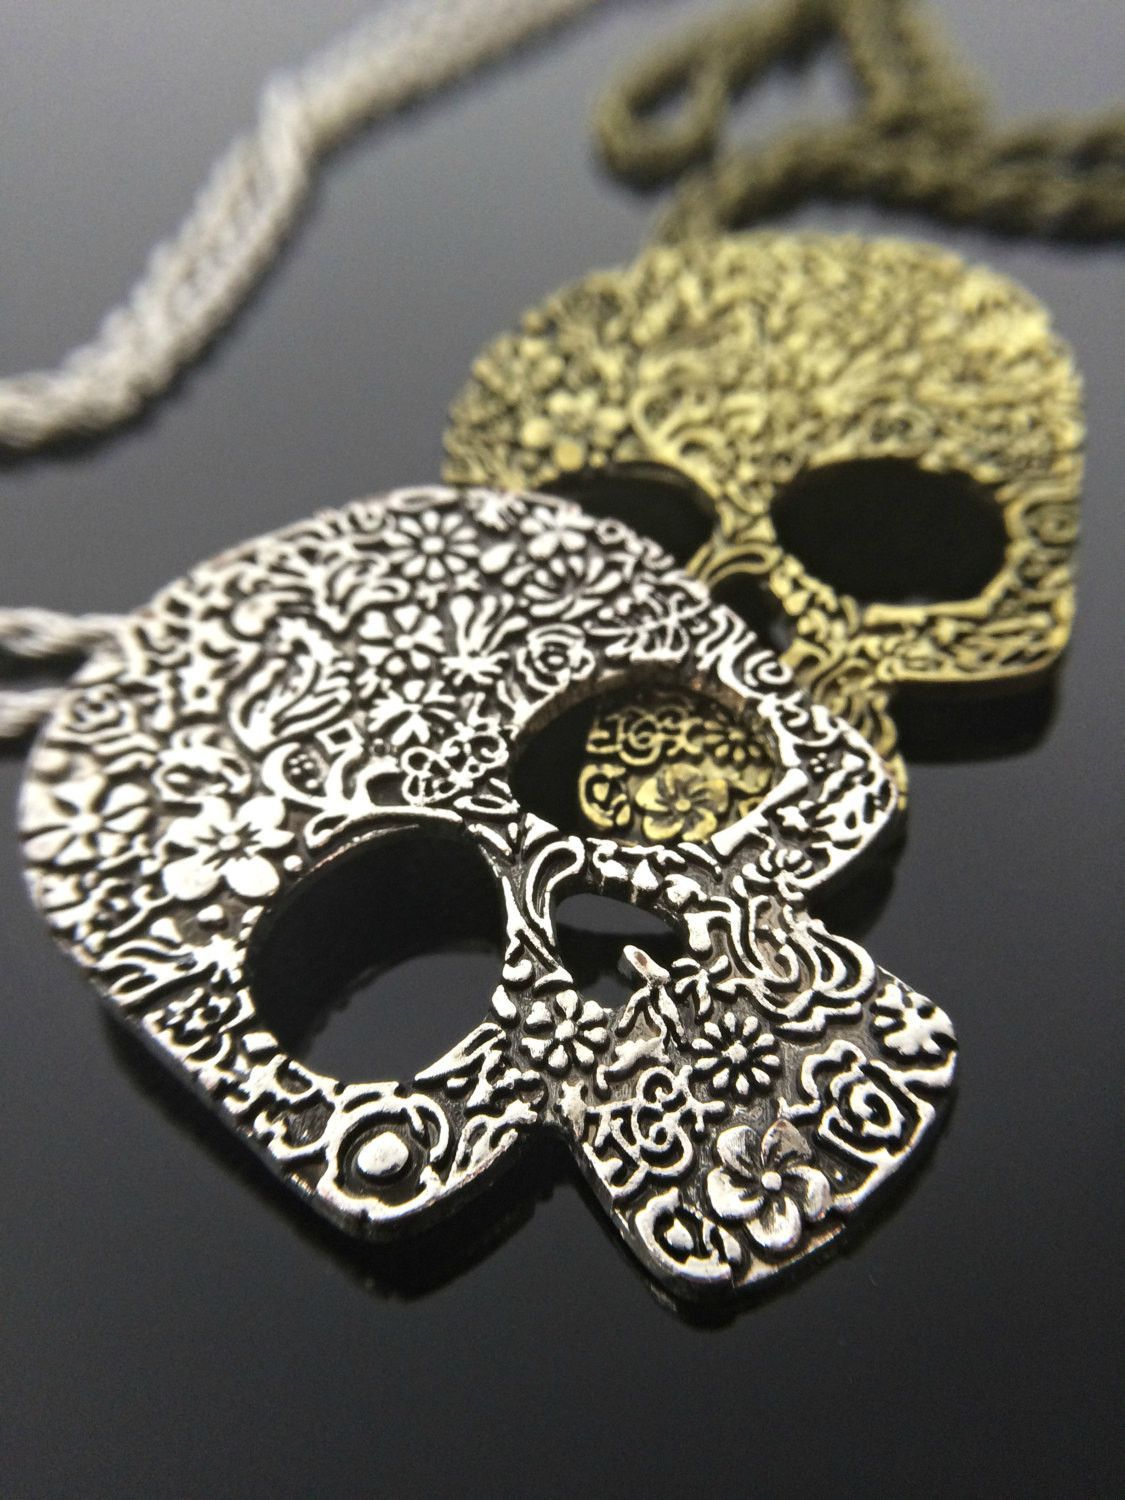 new necklace pin dead skull of the day silver sugar pendant handmade jewelry